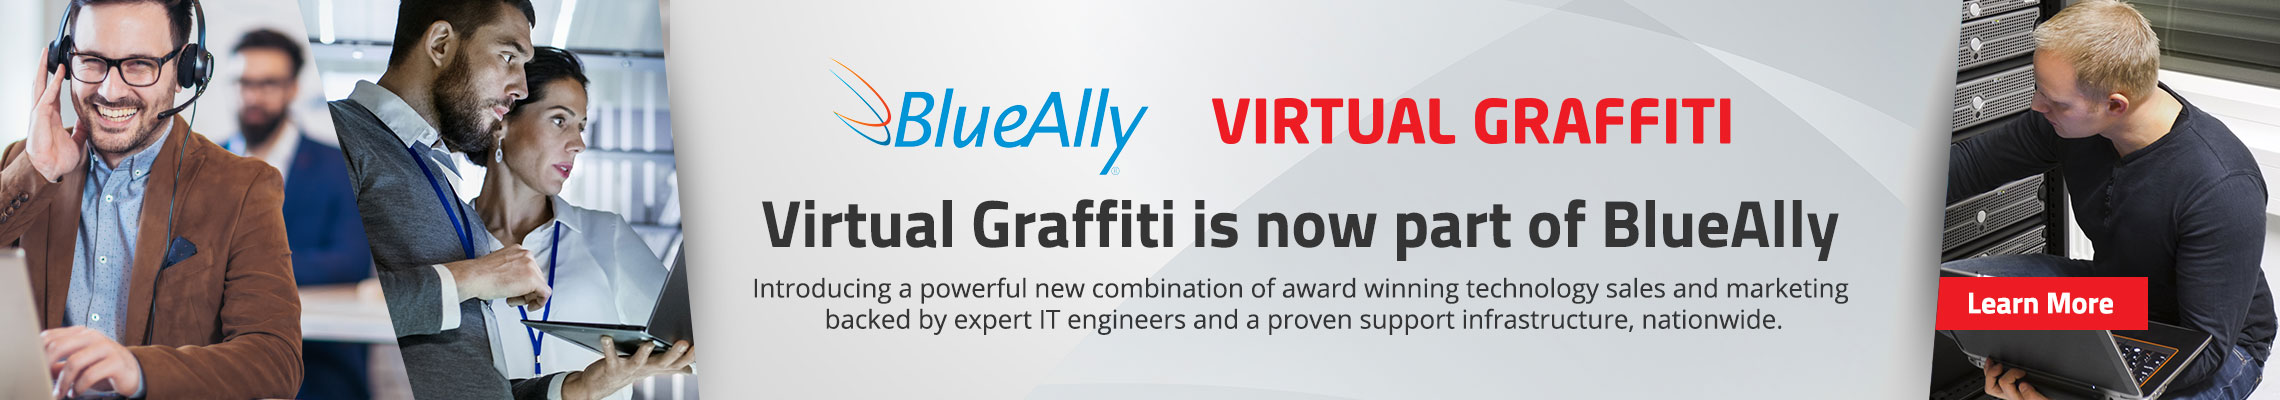 Virtual Graffiti has been acquired by BlueAlly